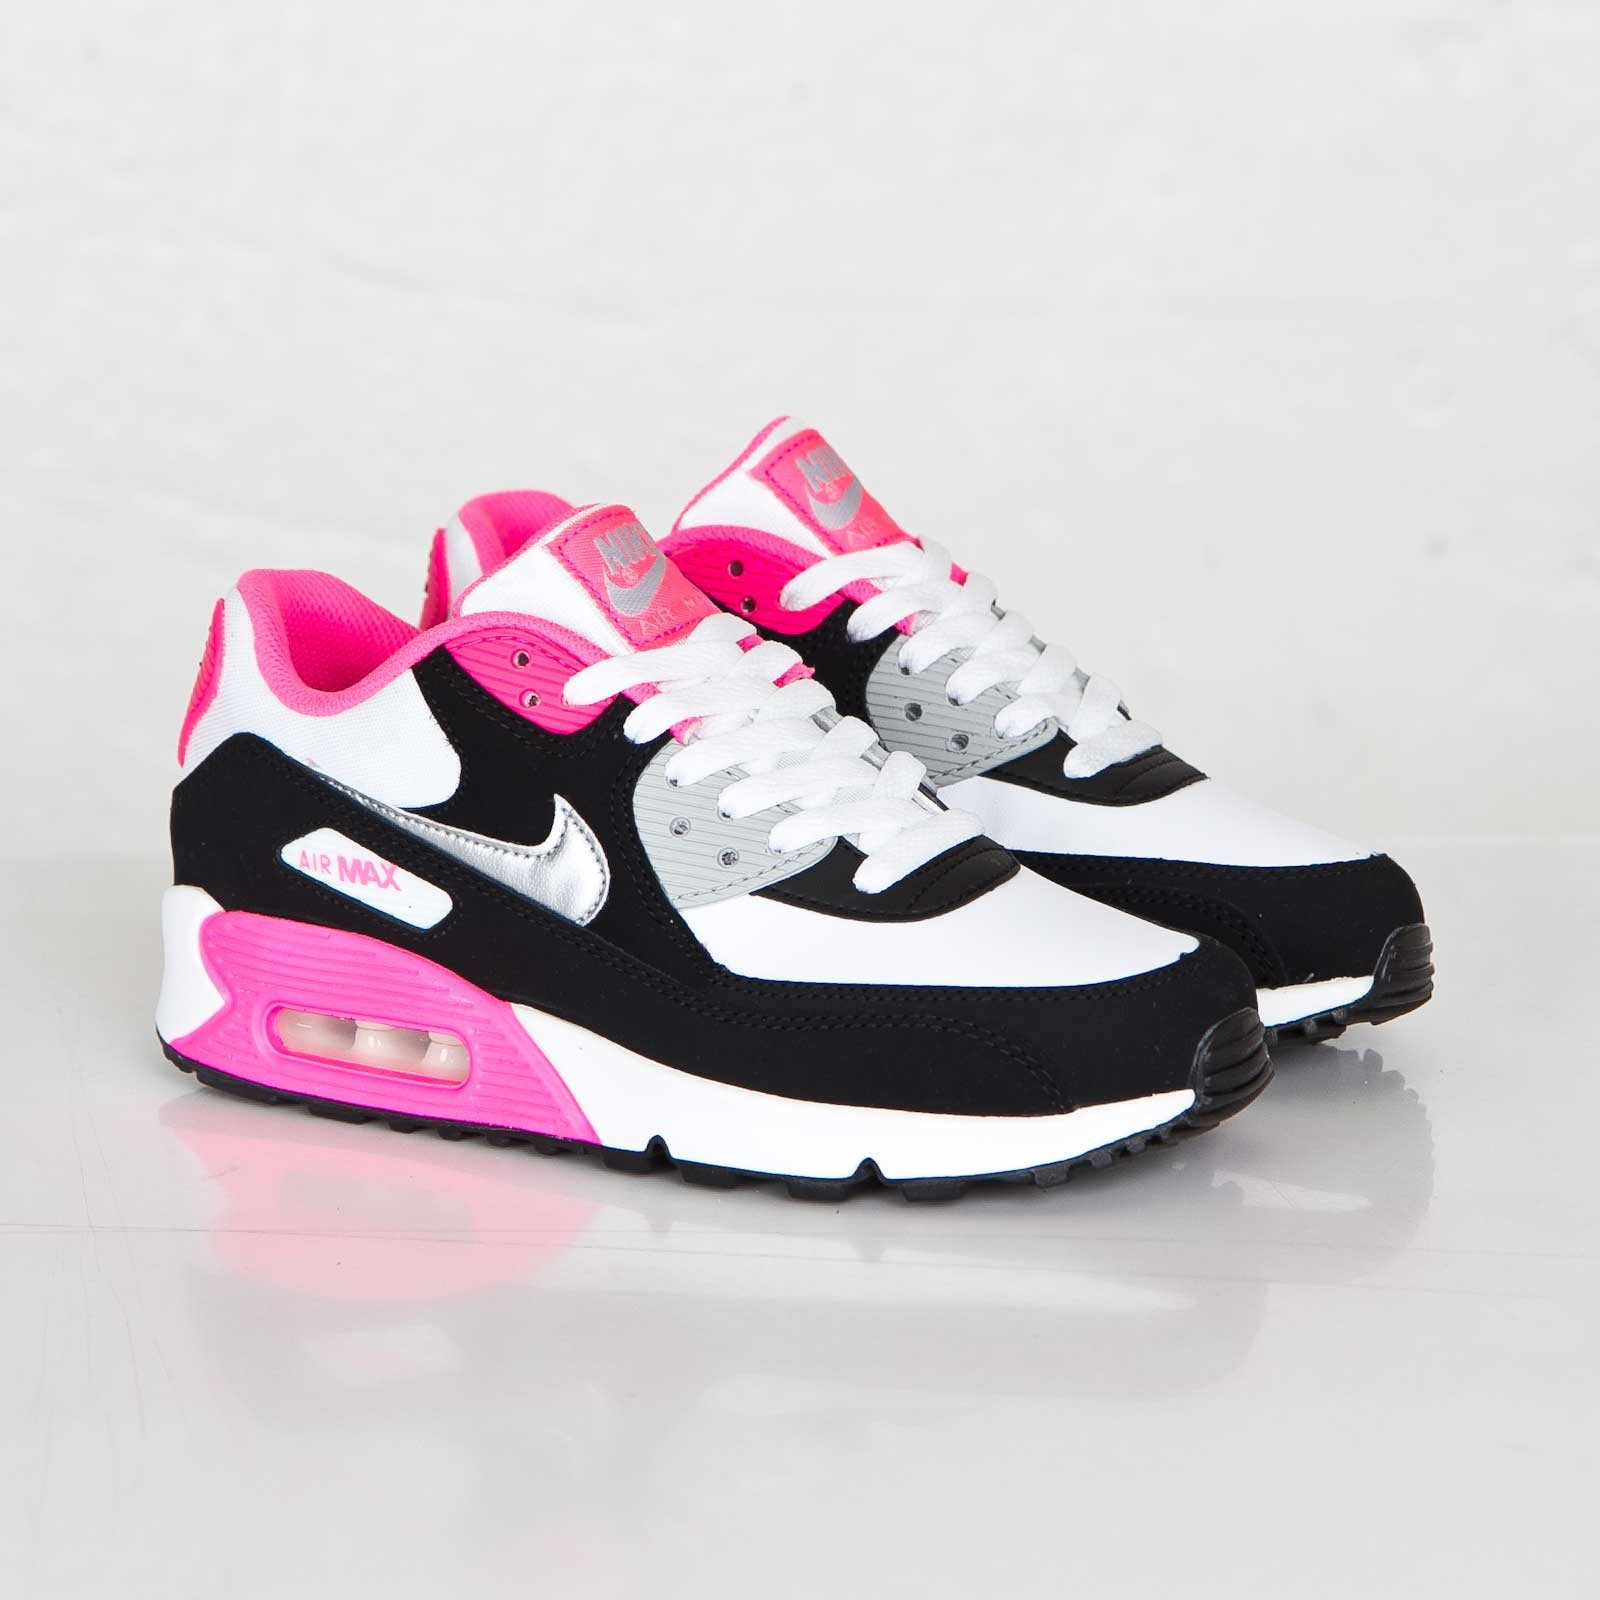 nike air max soldes de femme nike sortie discount shox. Black Bedroom Furniture Sets. Home Design Ideas